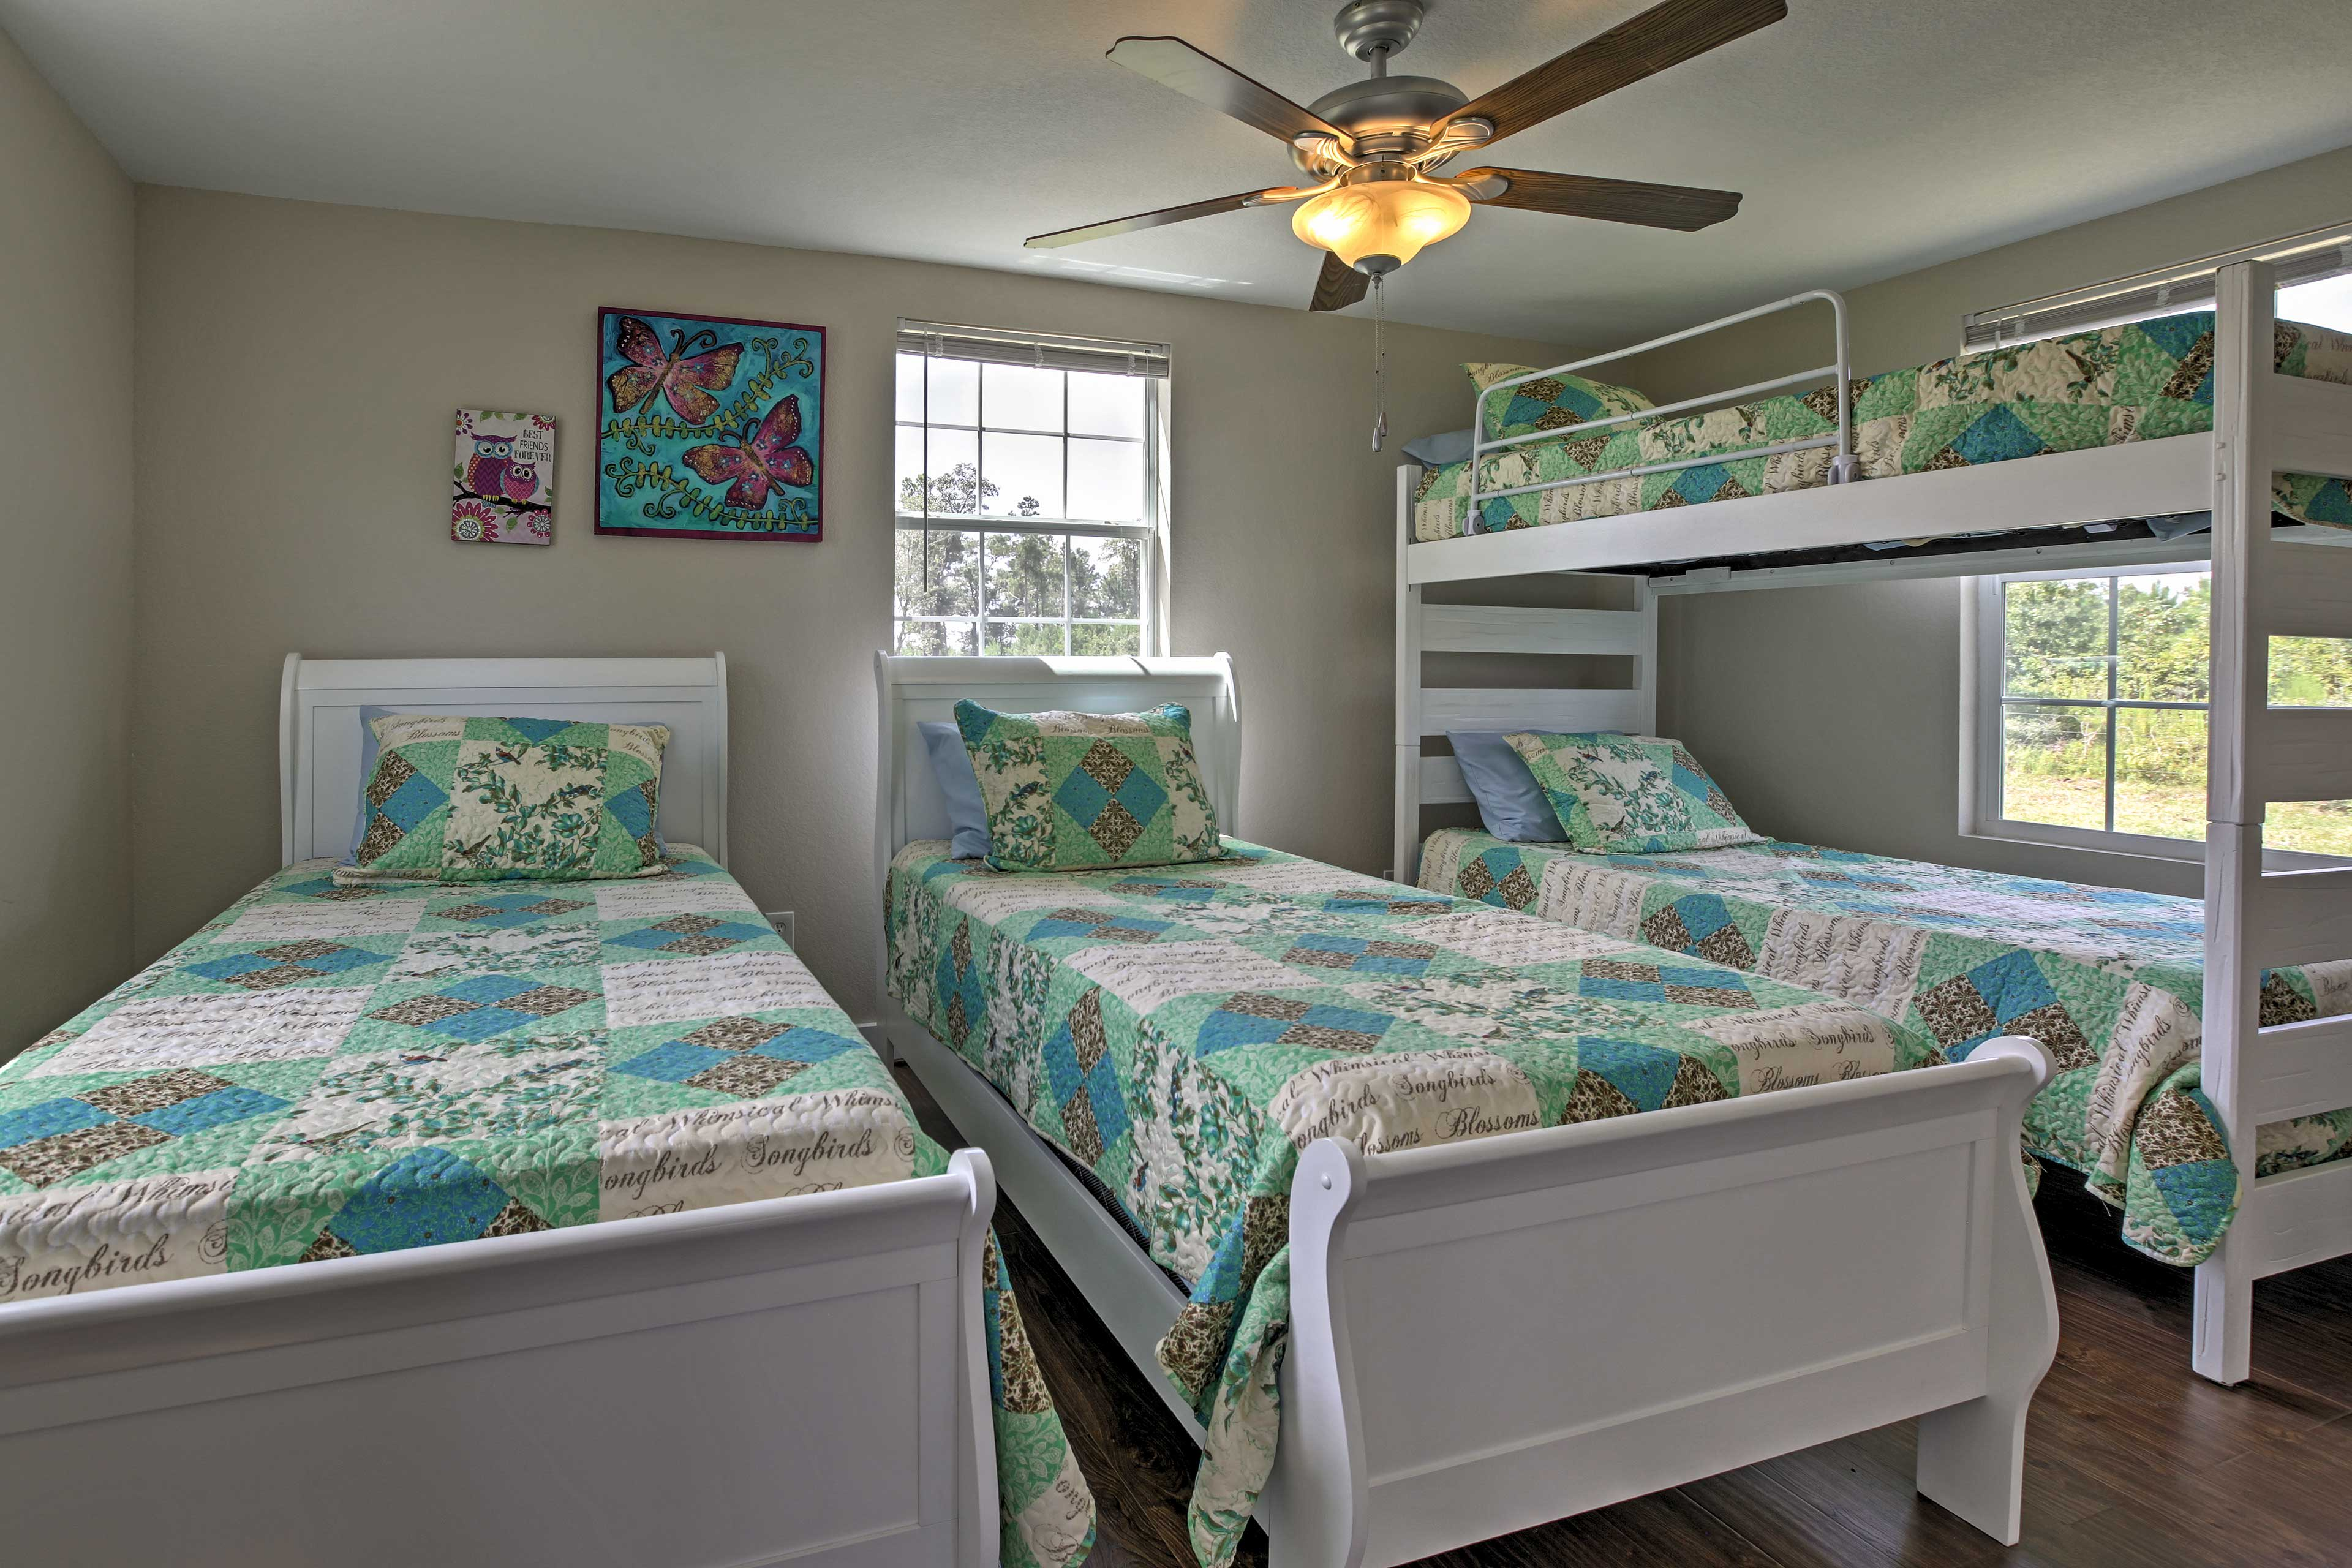 When you're ready to call it a night,  choose between the home's 2 bedrooms.